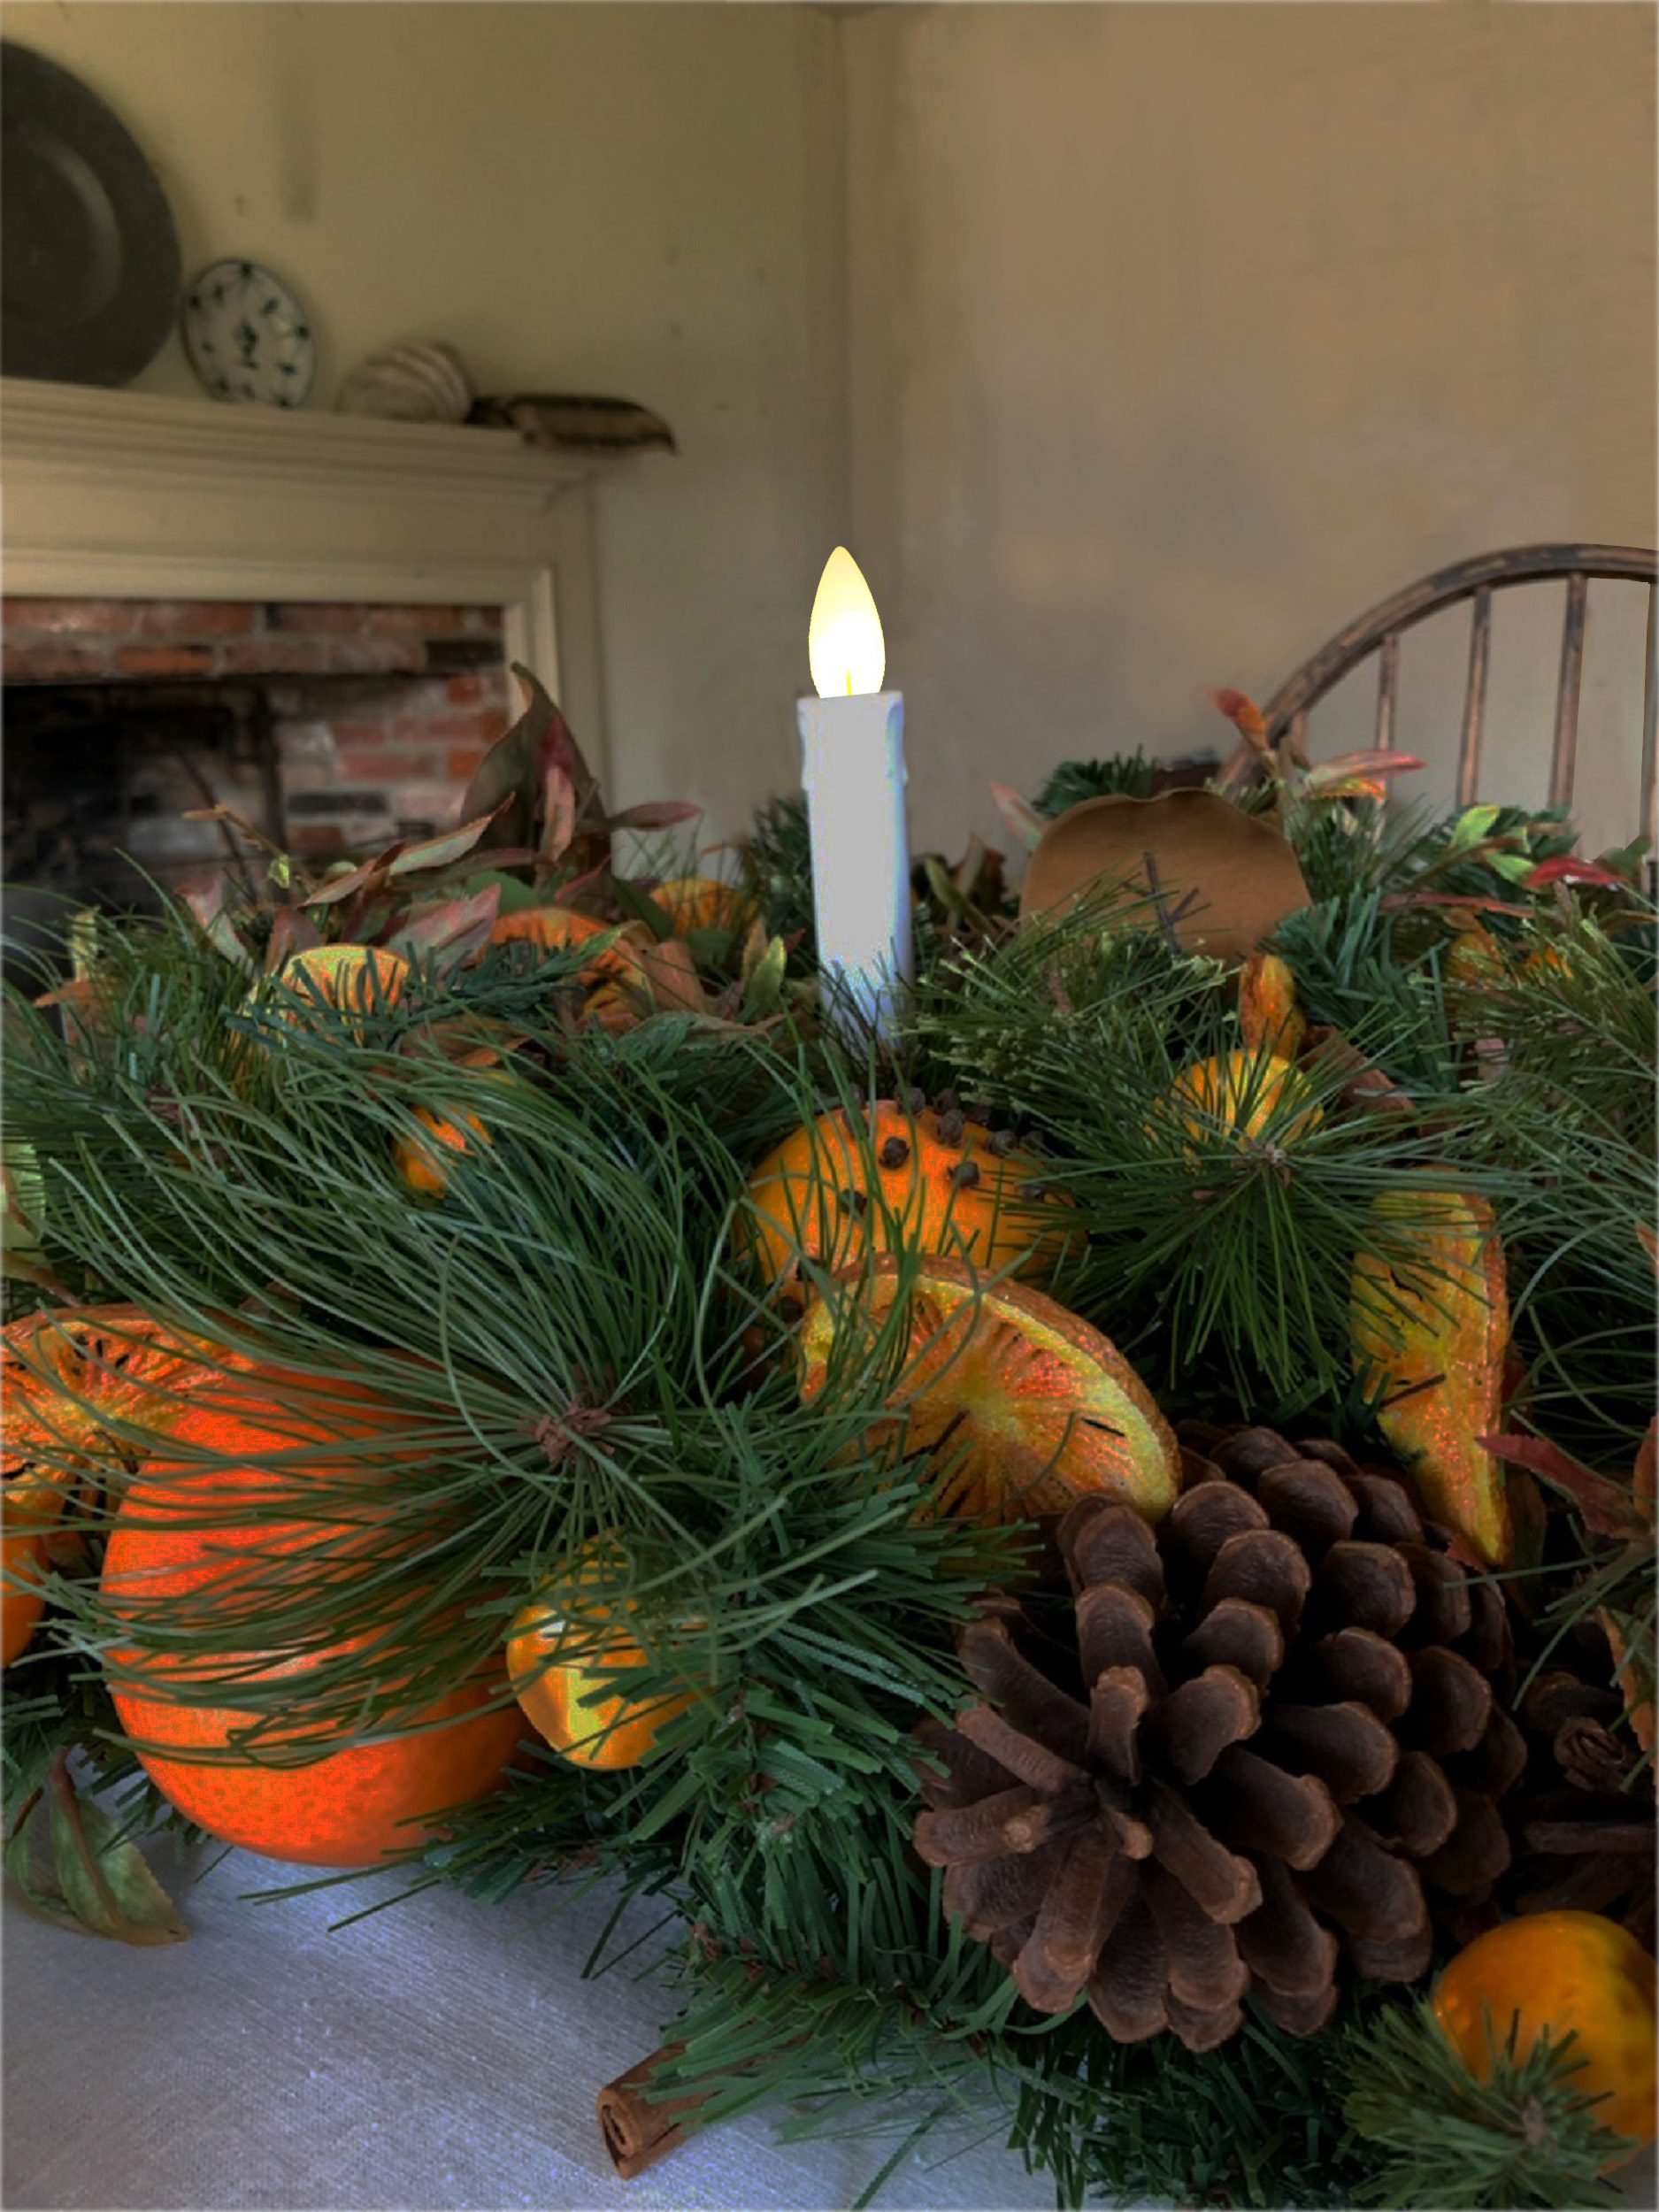 IN PERSON Aglow: A Holiday Experience at Mulford Farm at Mulford Farm